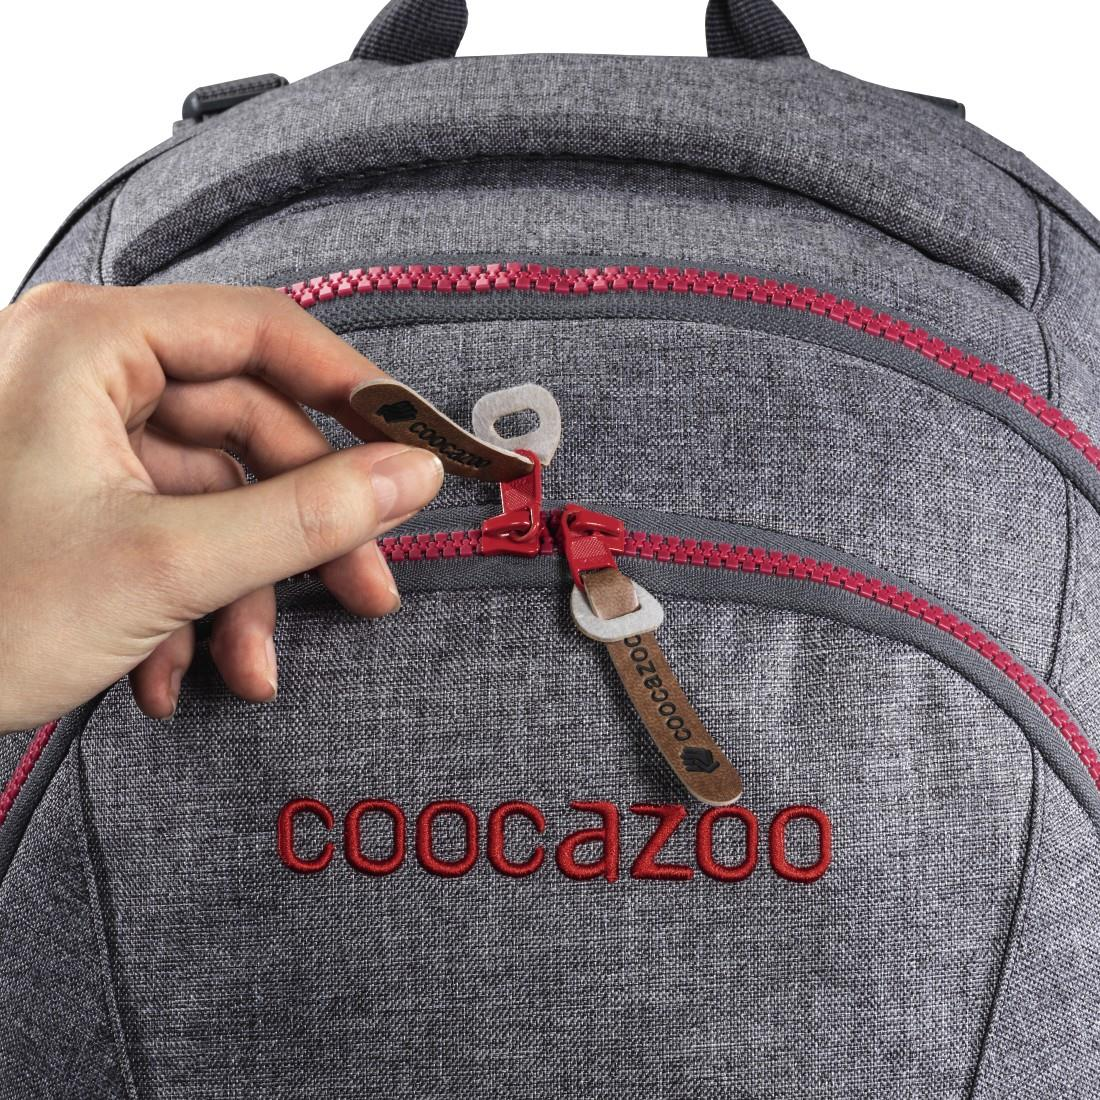 Coocazoo MatchPatch Synthetic Leather, Black